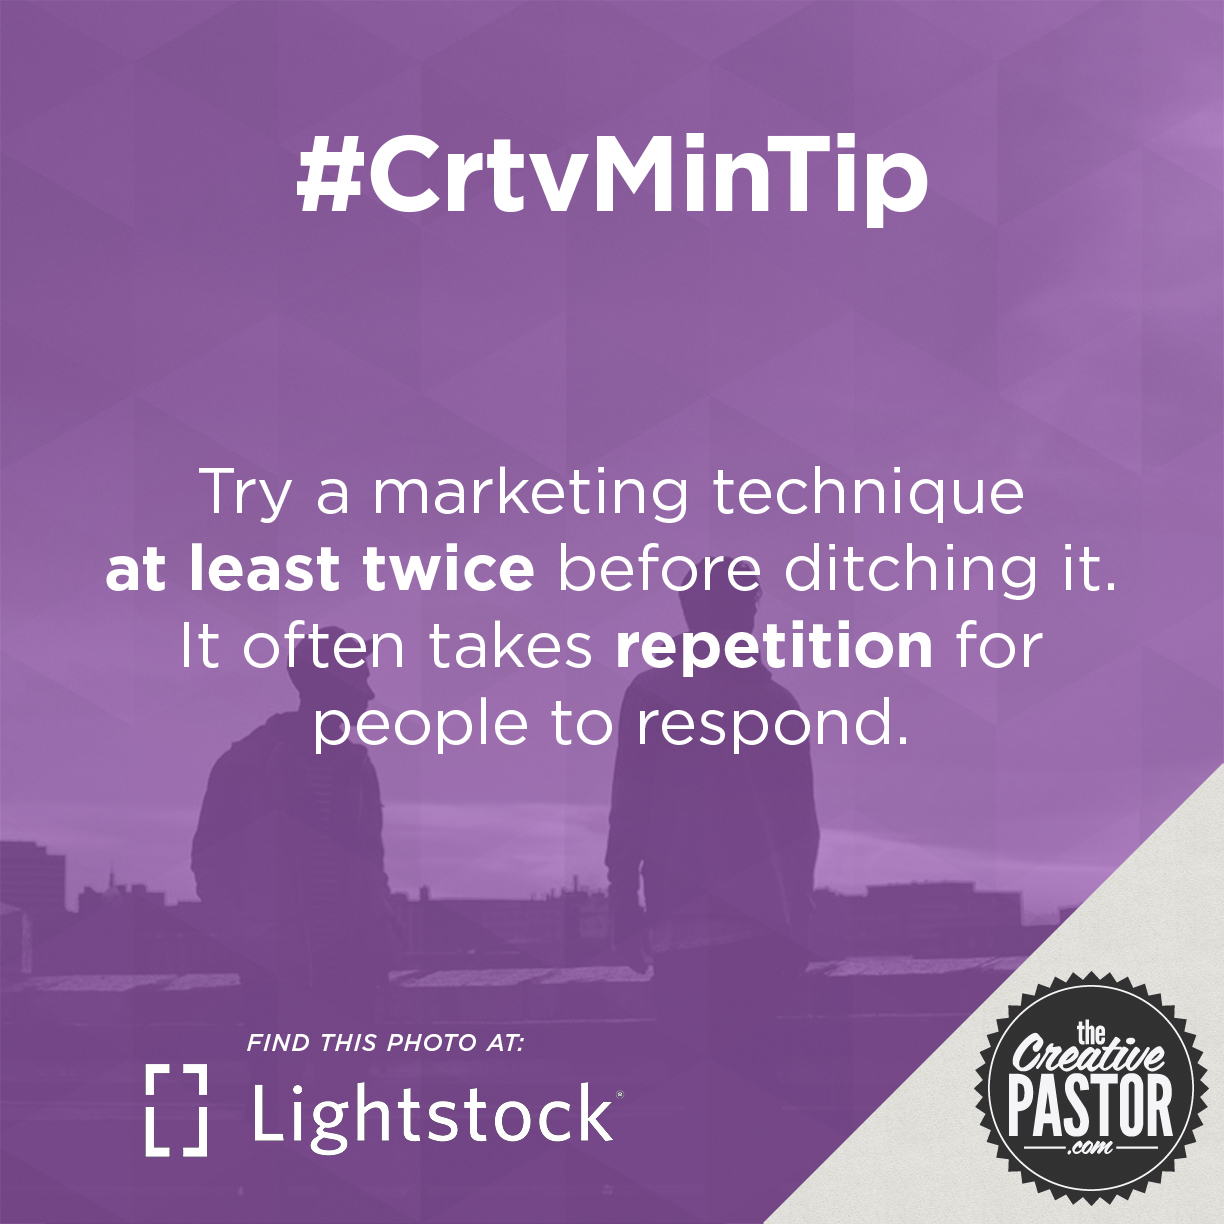 Try a marketing technique at least twice before ditching it. It often takes repetition for people to respond.